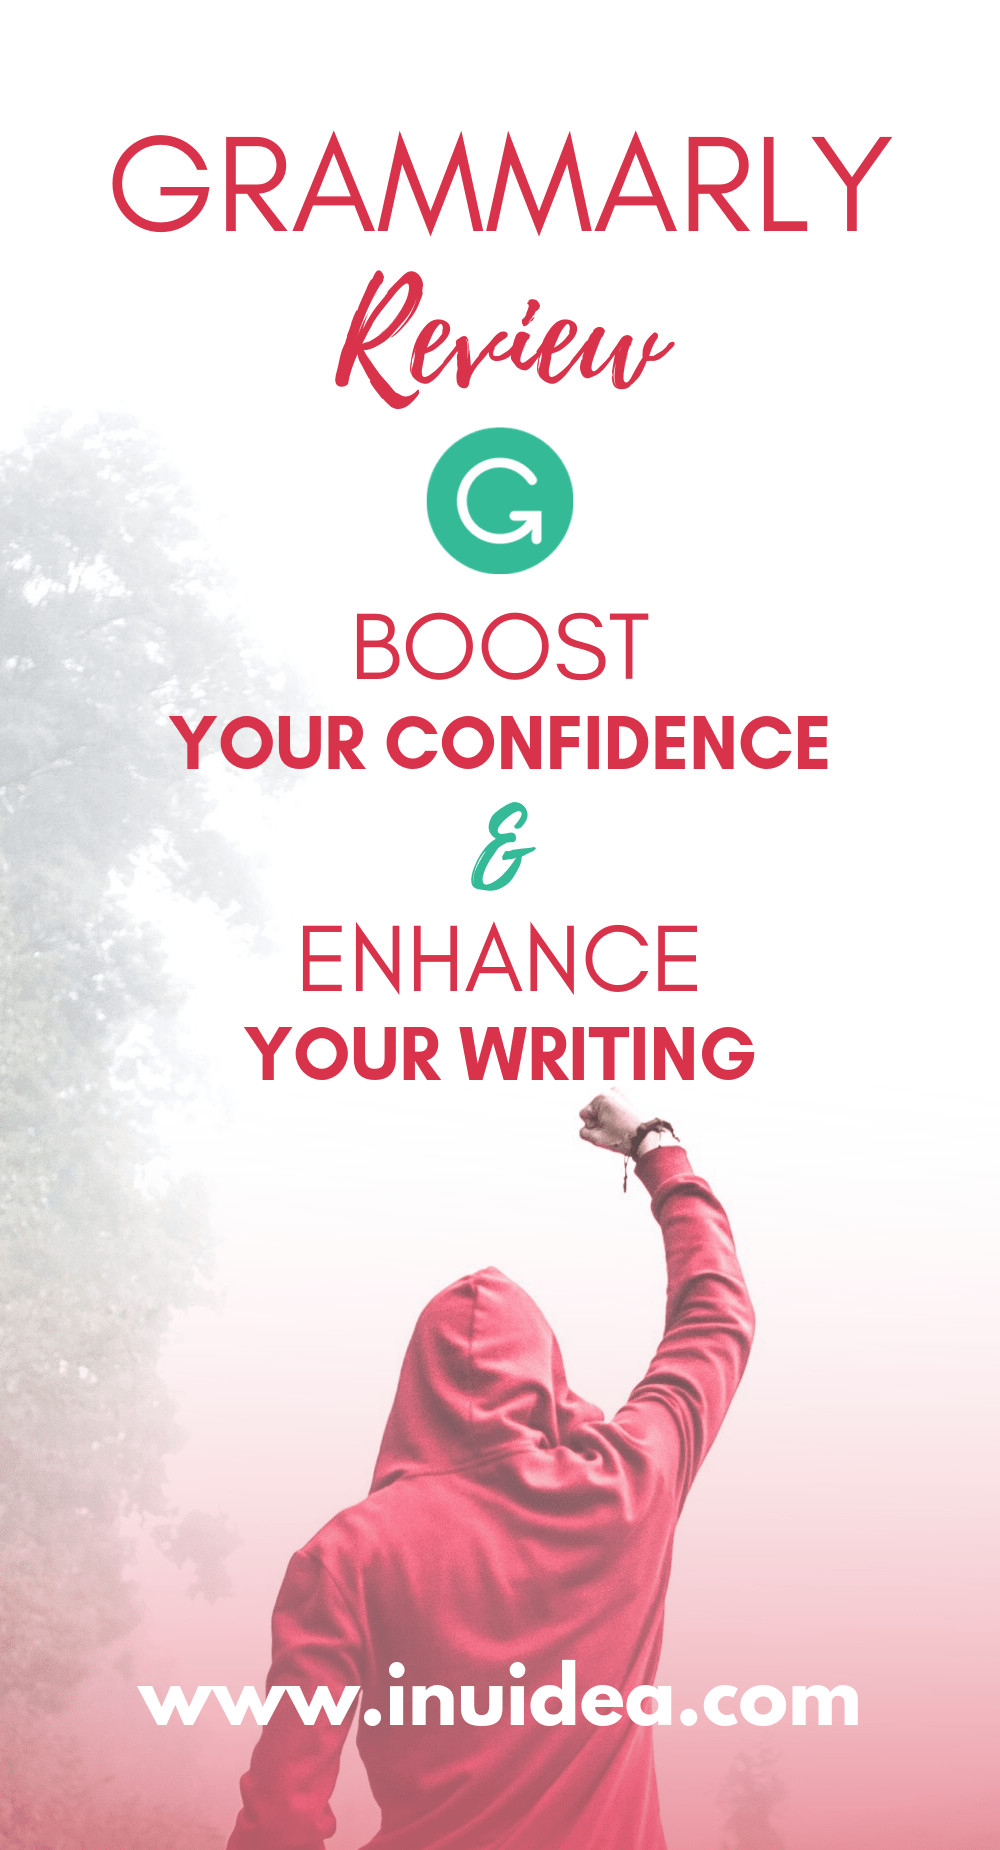 Grammarly Proofreading Software Twitter